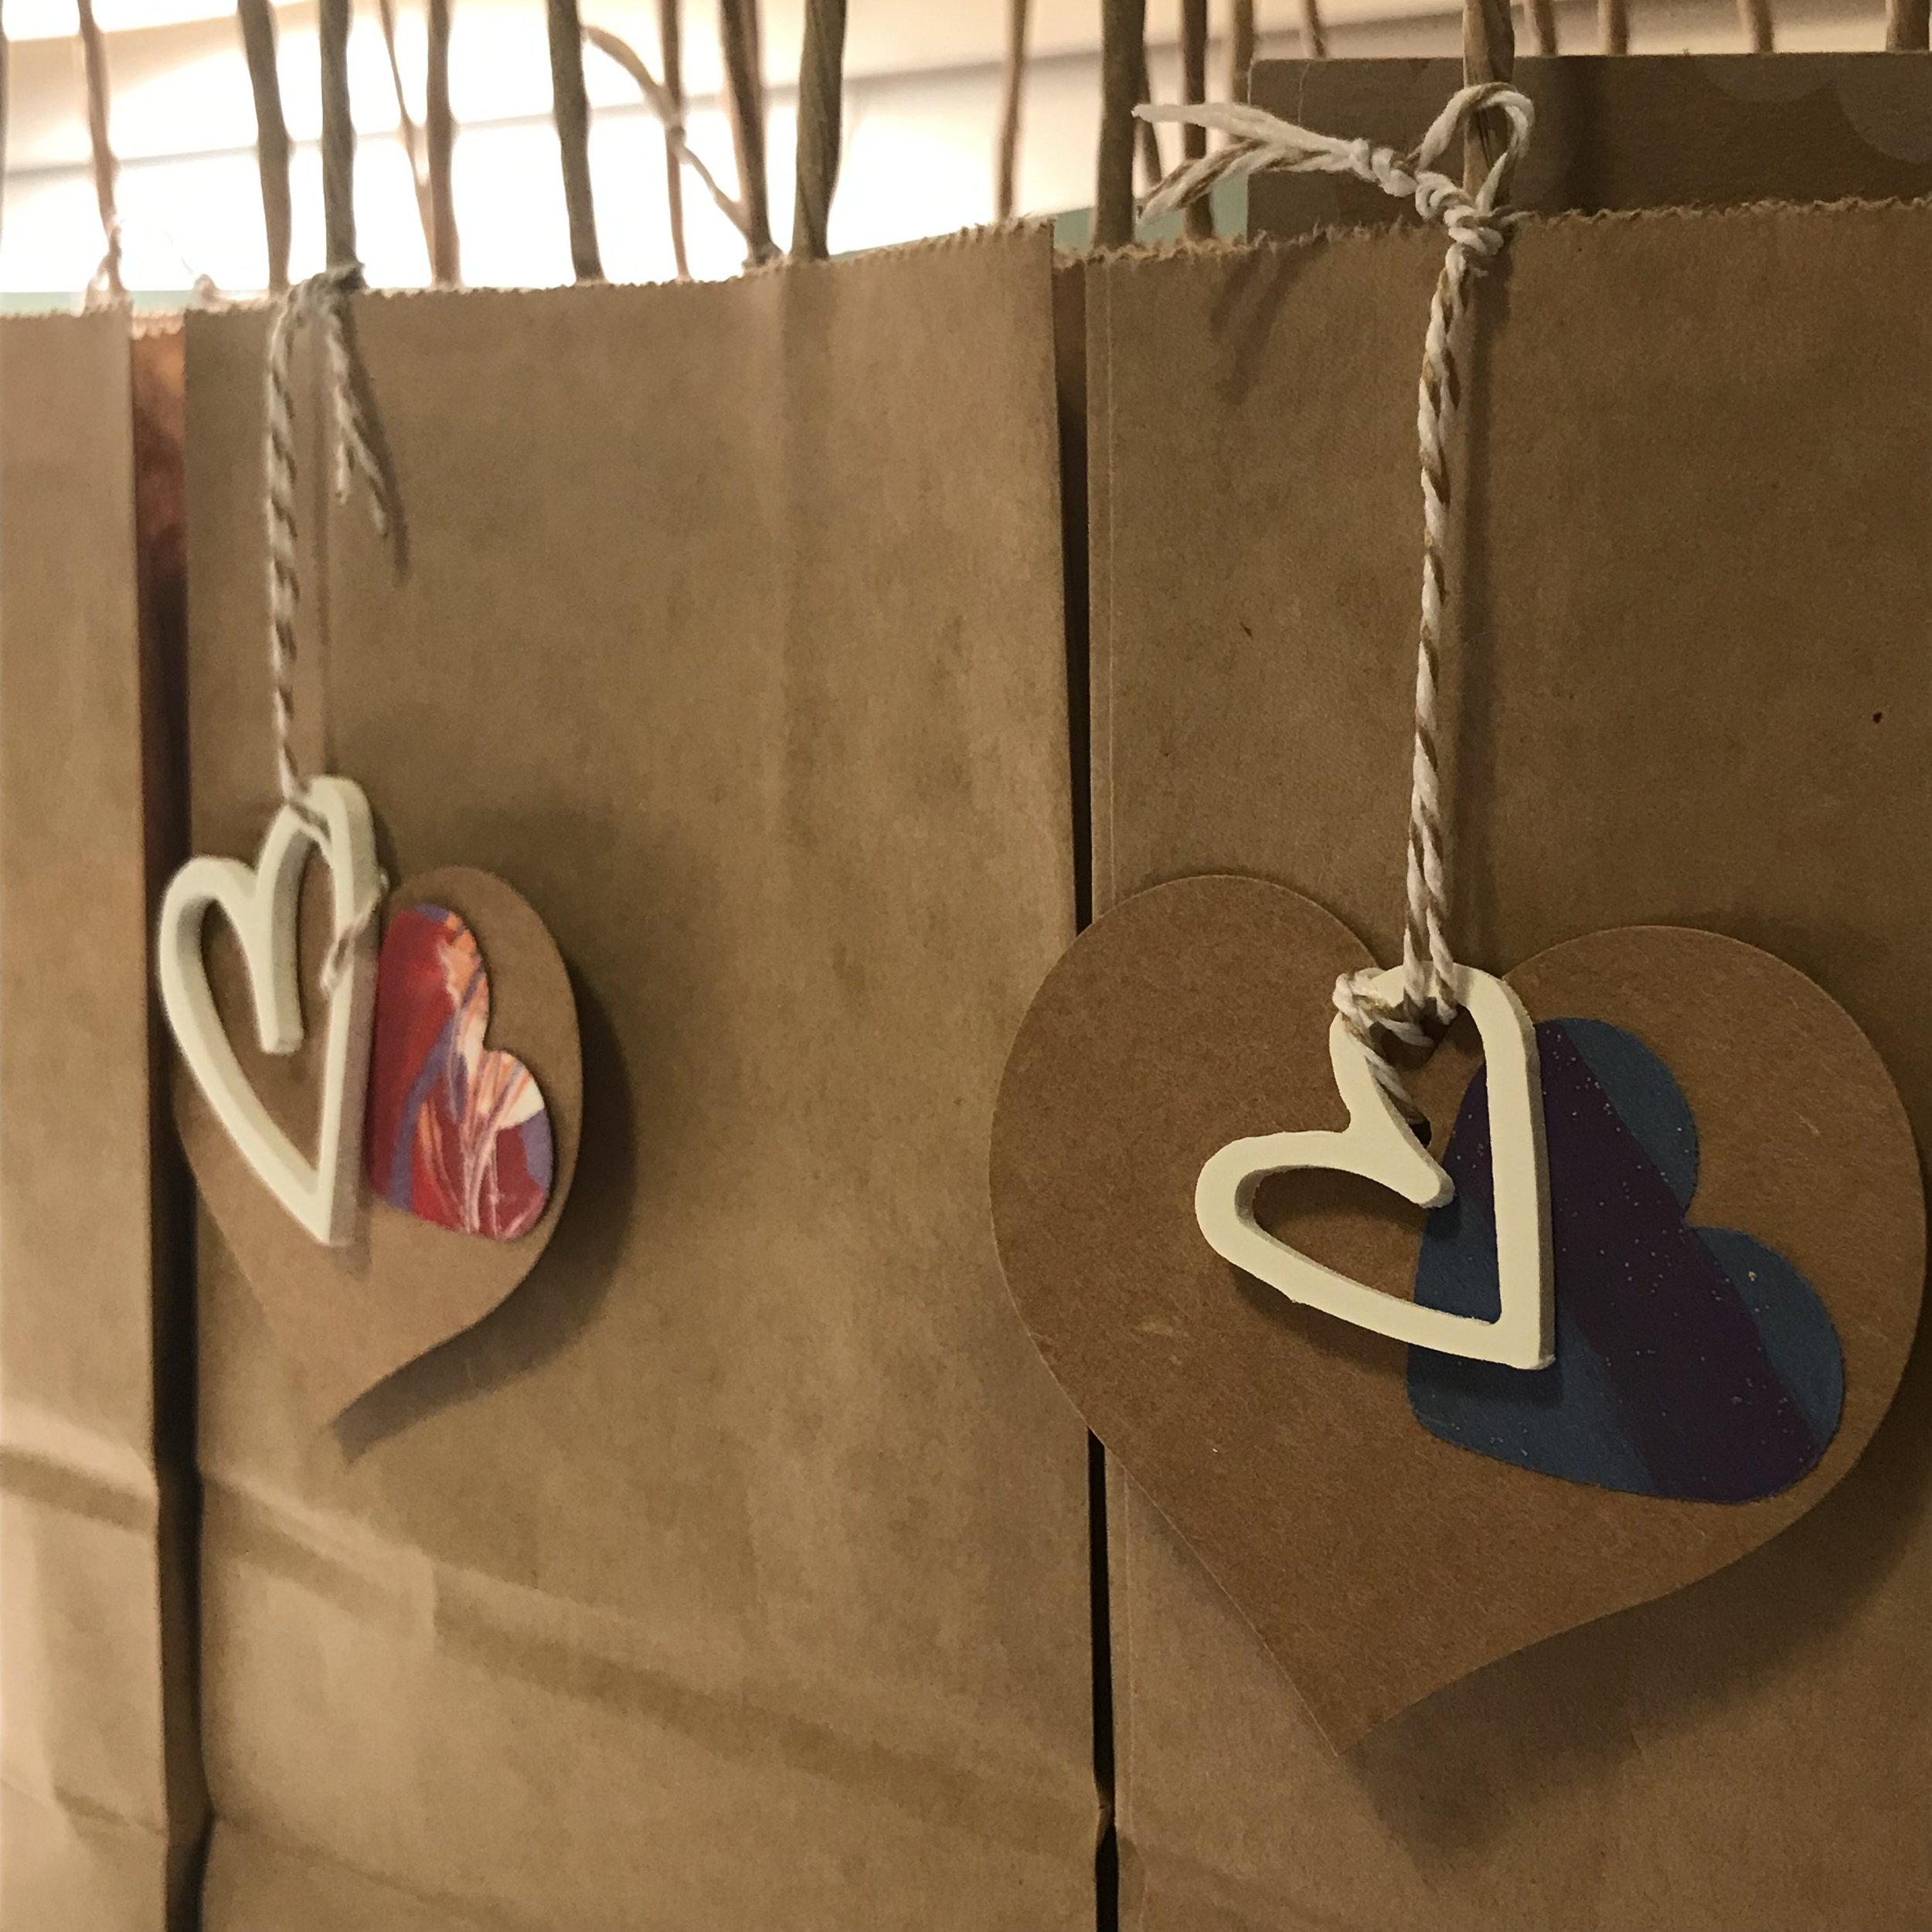 gift bags with writing goodies inside for every guest - (White recycled hearts created by Colleen Attara)